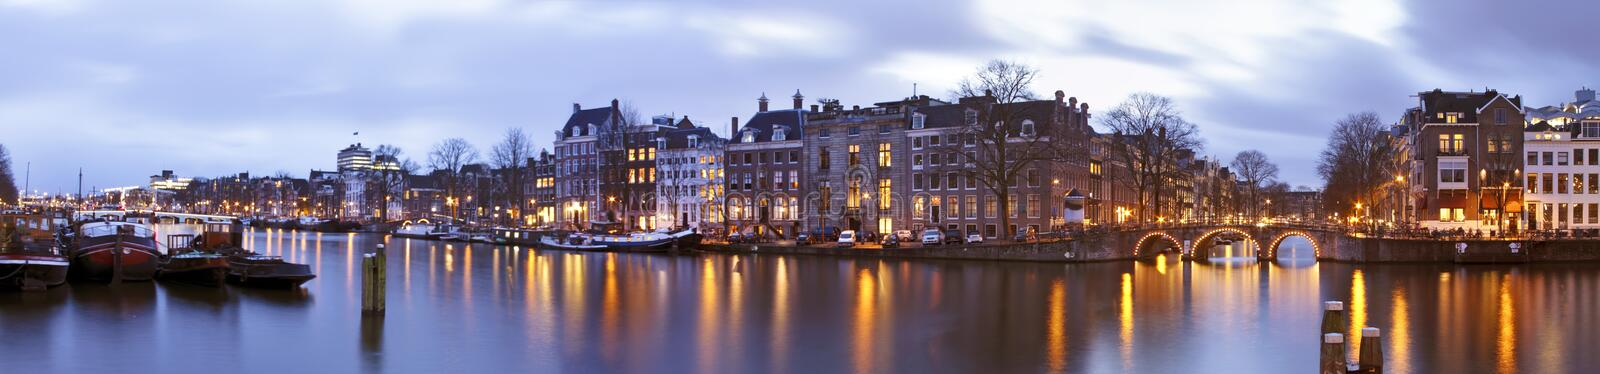 Download Panoramic View From Amsterdam Netherlands Stock Photo - Image: 22351028